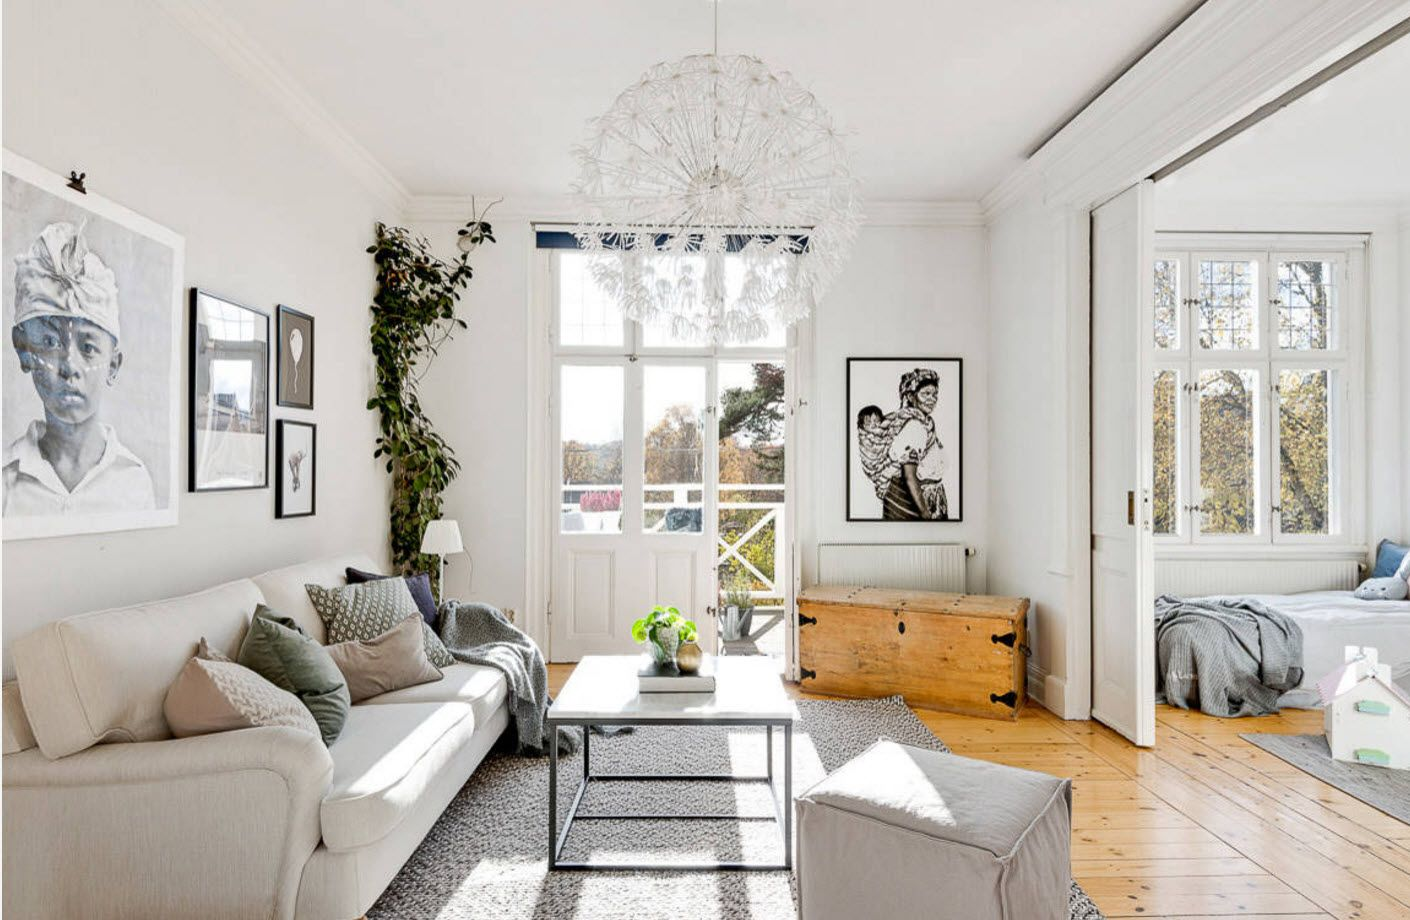 Classic white interior of the modern sitting room in the private house